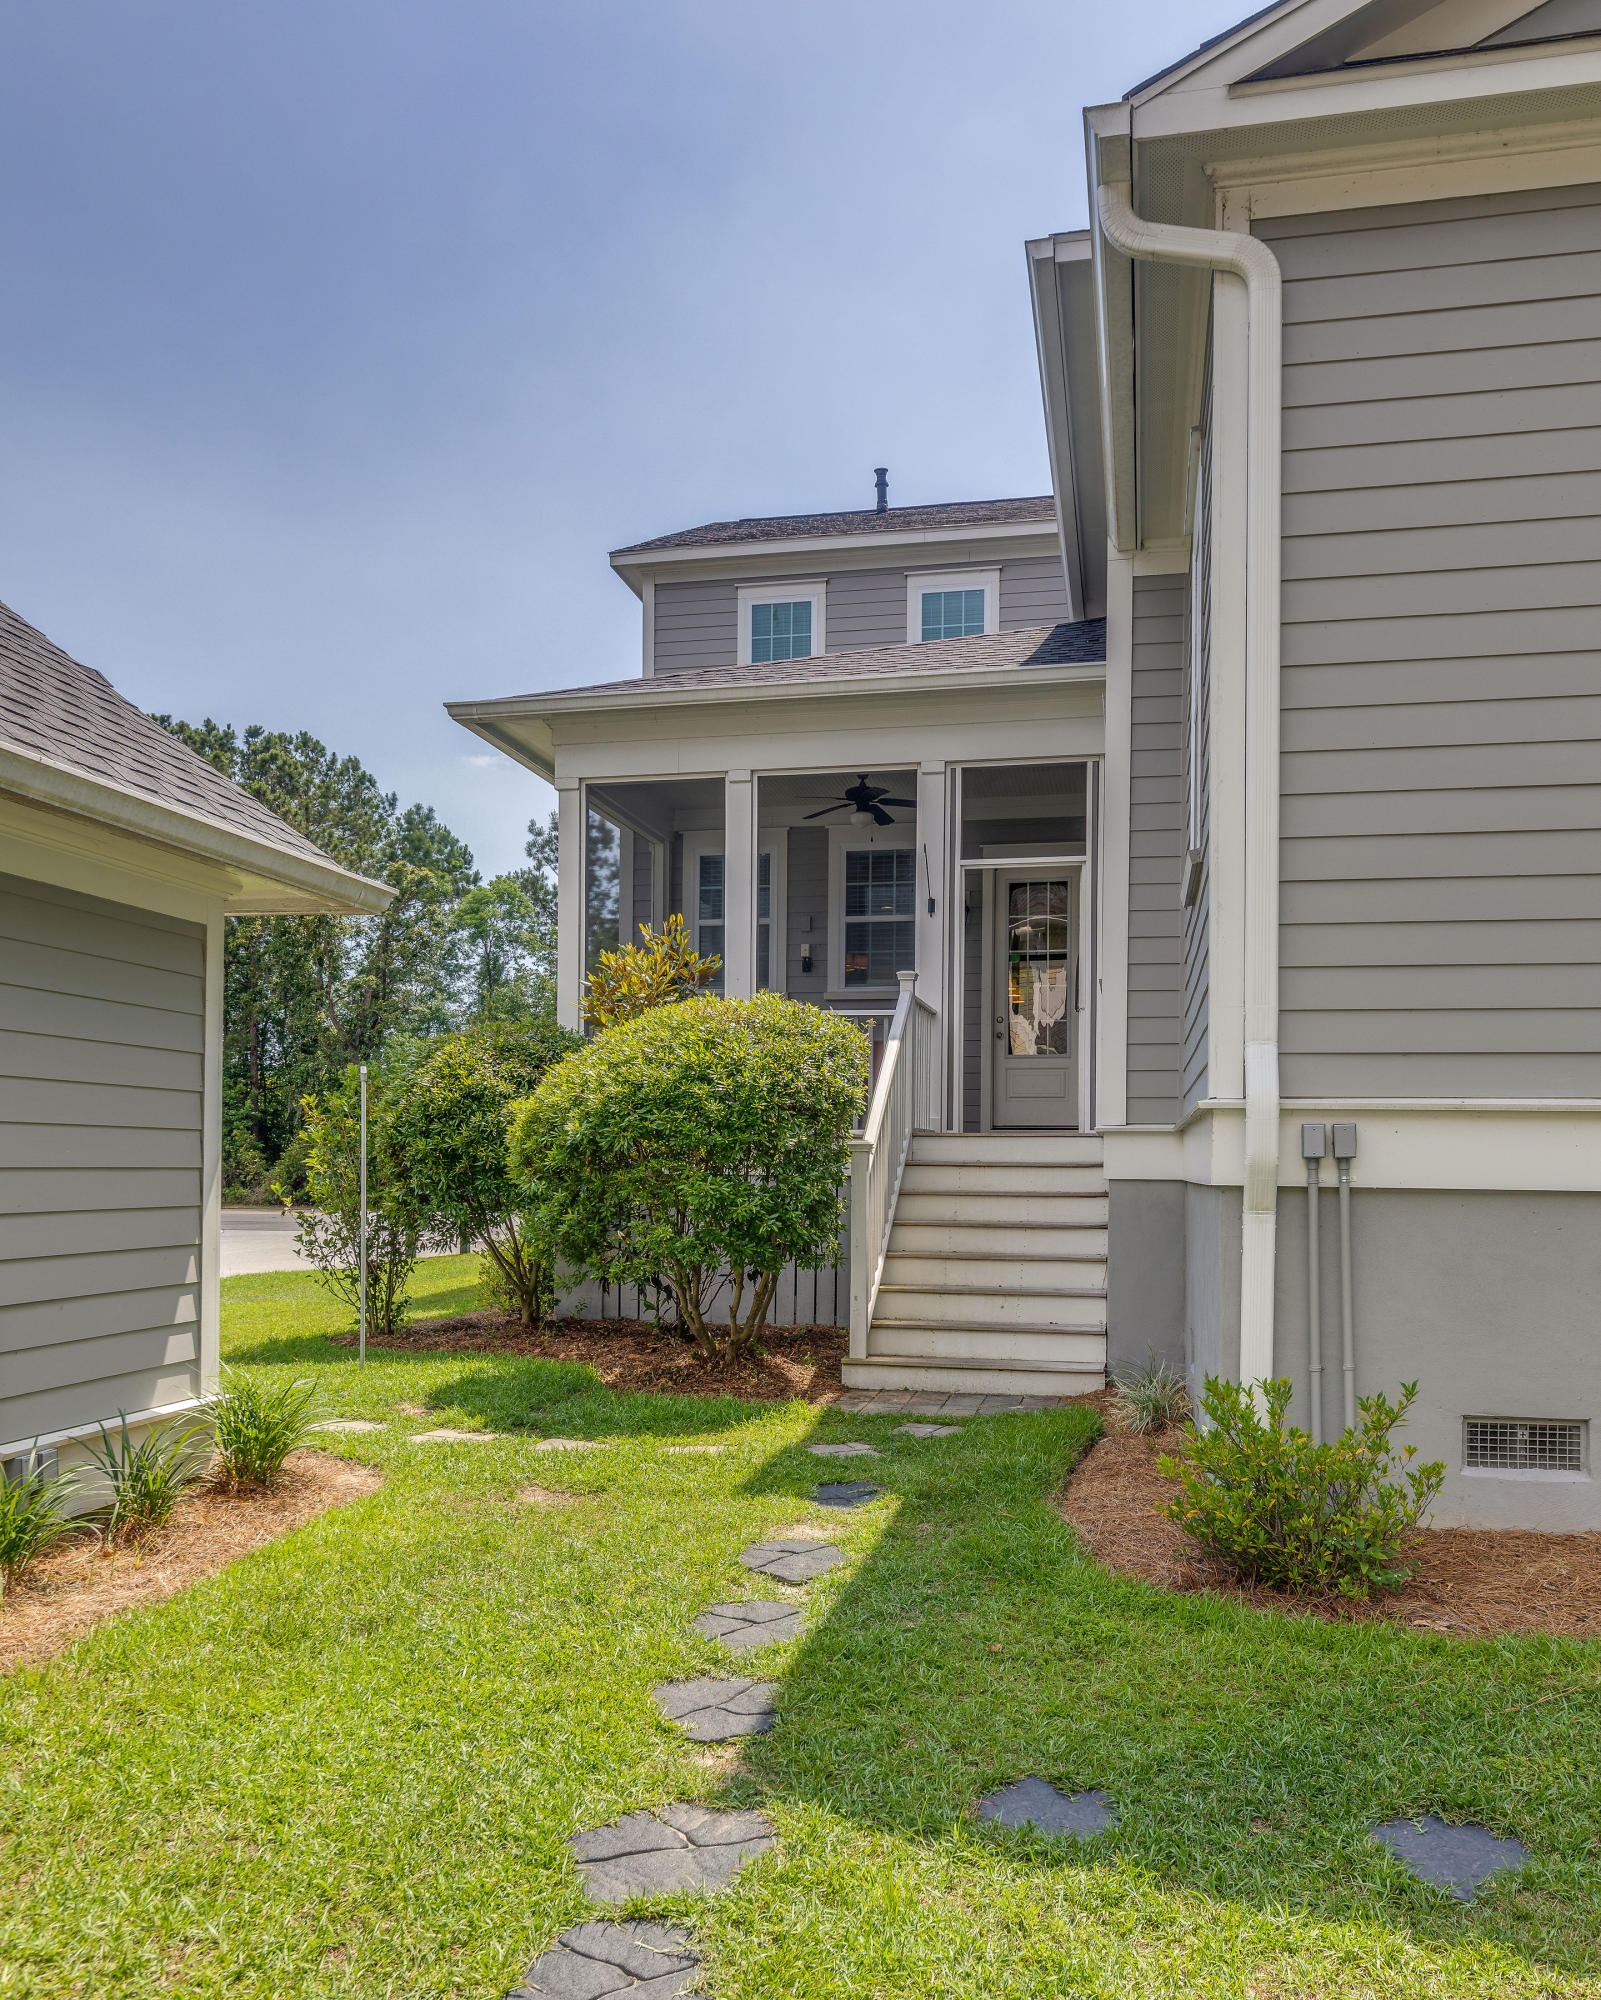 Rivertowne On The Wando Homes For Sale - 2765 Rivertowne, Mount Pleasant, SC - 31